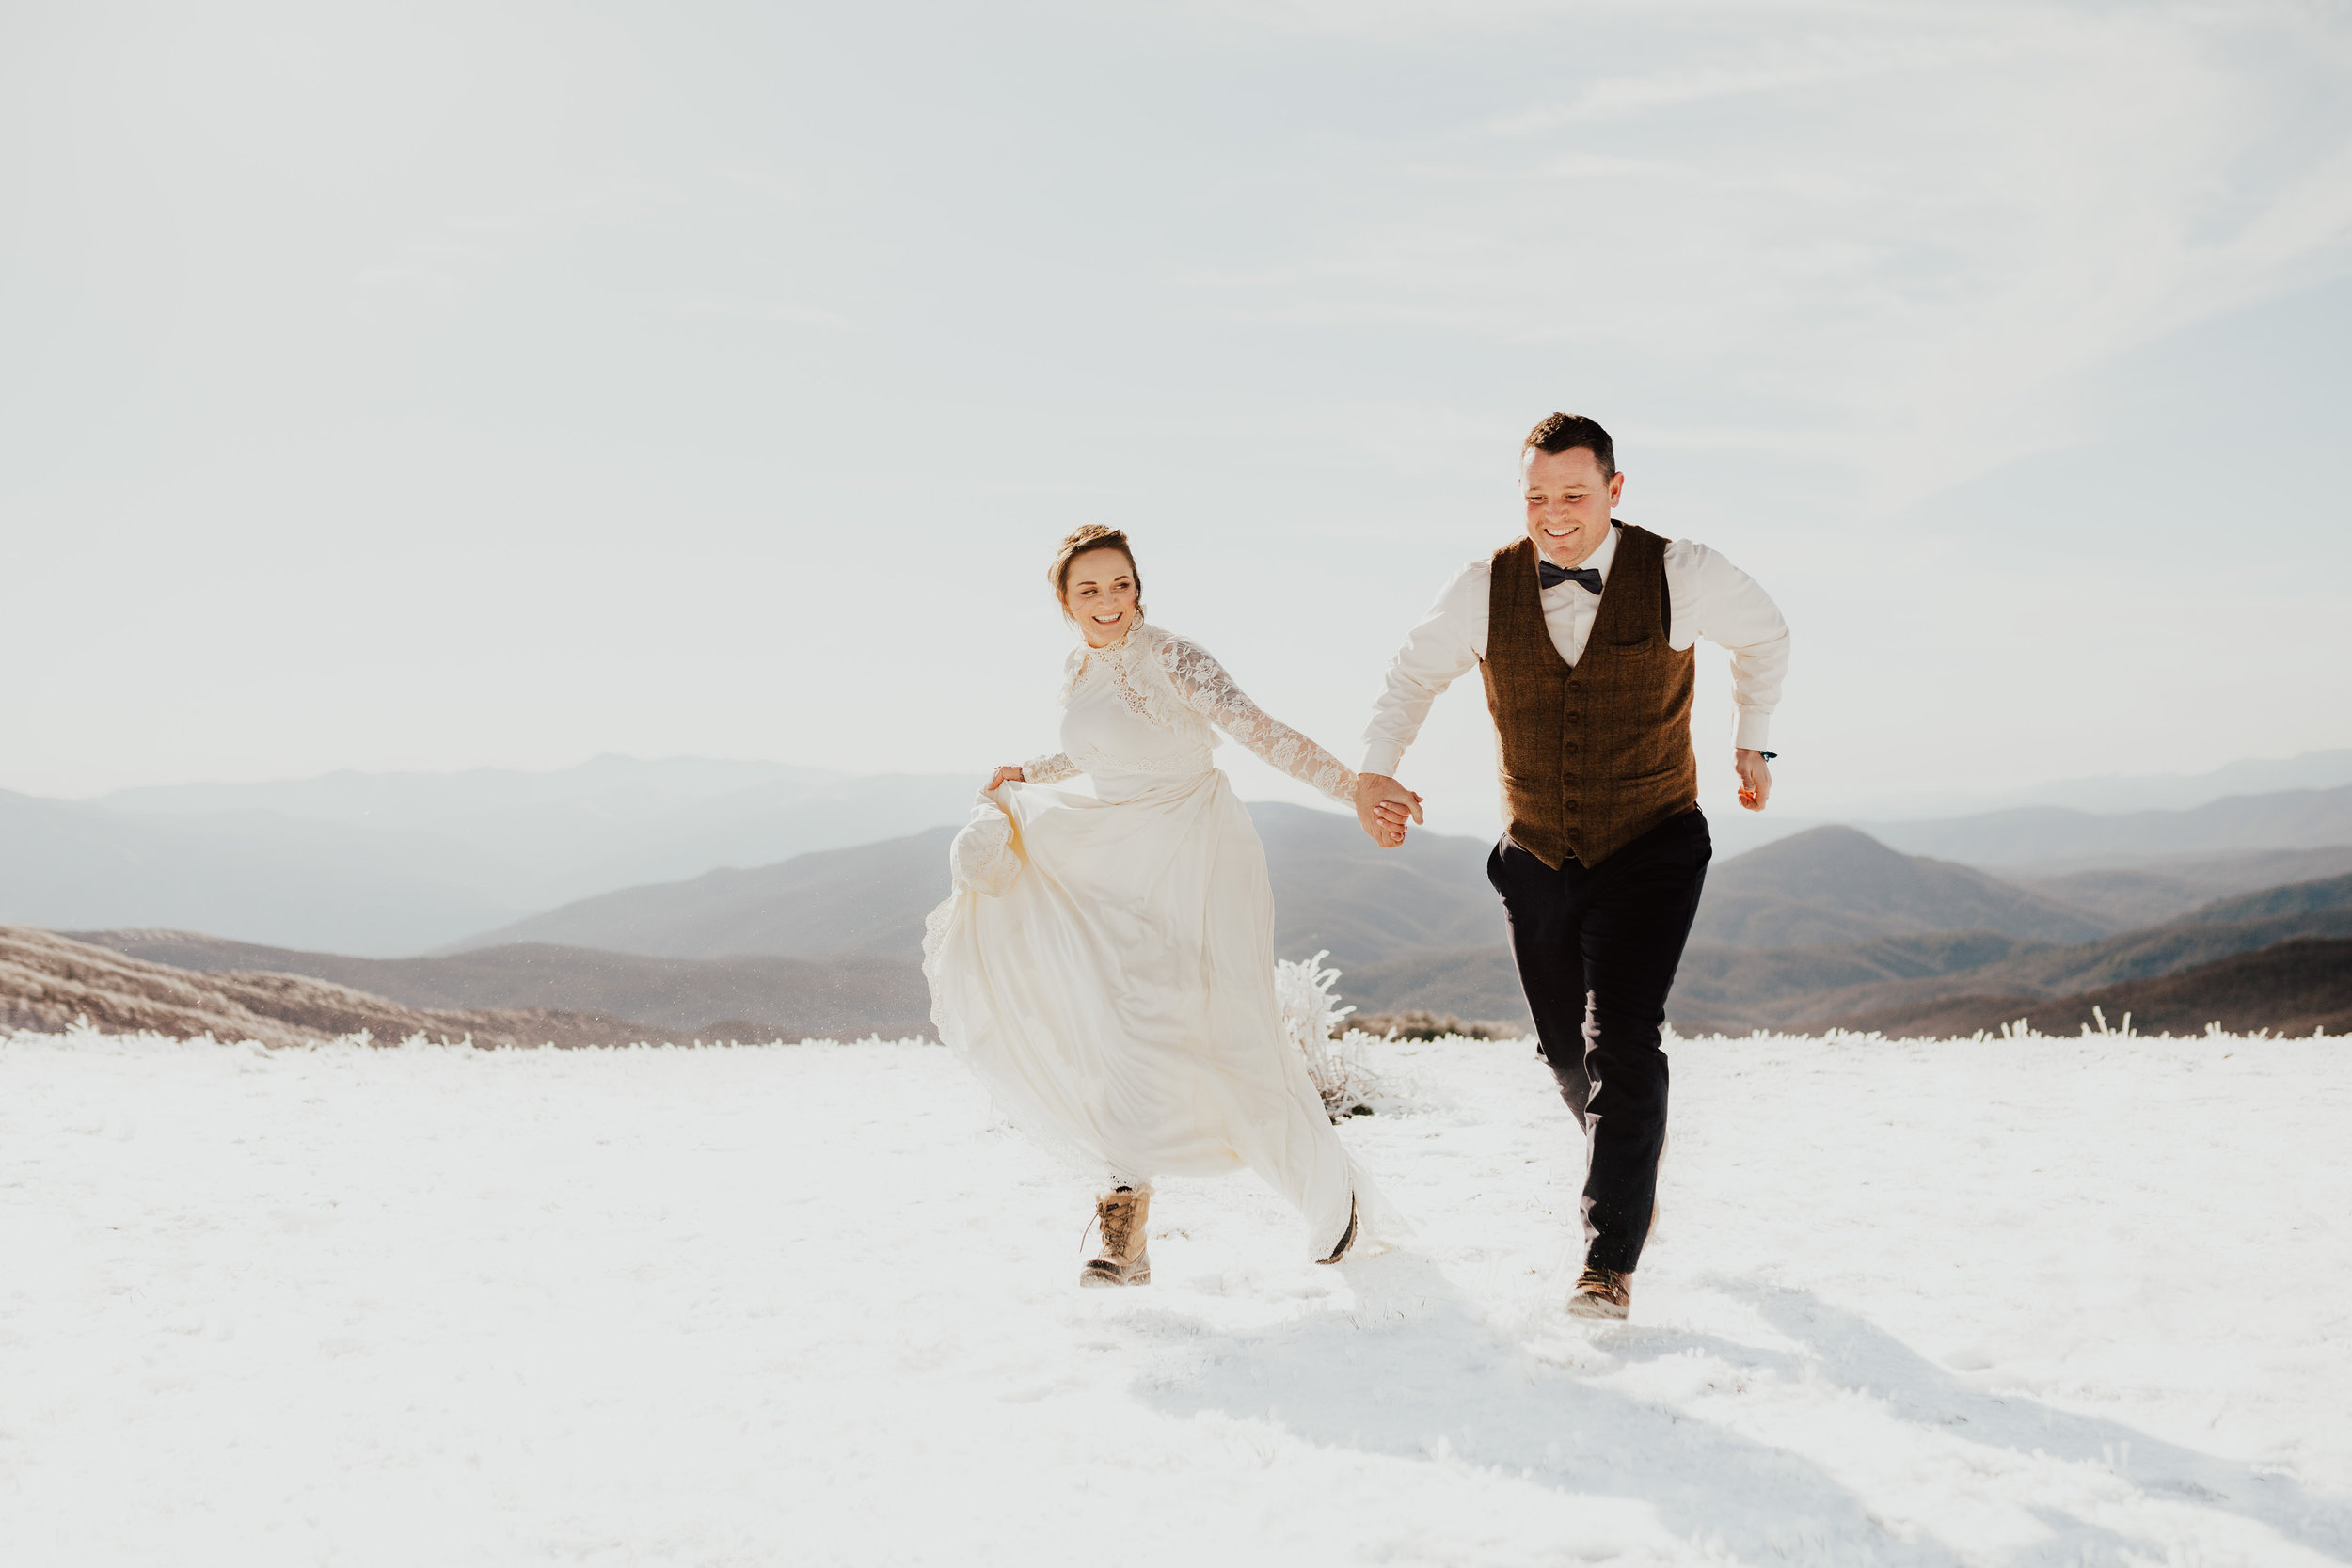 LATEST ON THE BLOG - Darren + Nata | Adventure Elopement in the Smoky Mountains, NC | (coming soon)